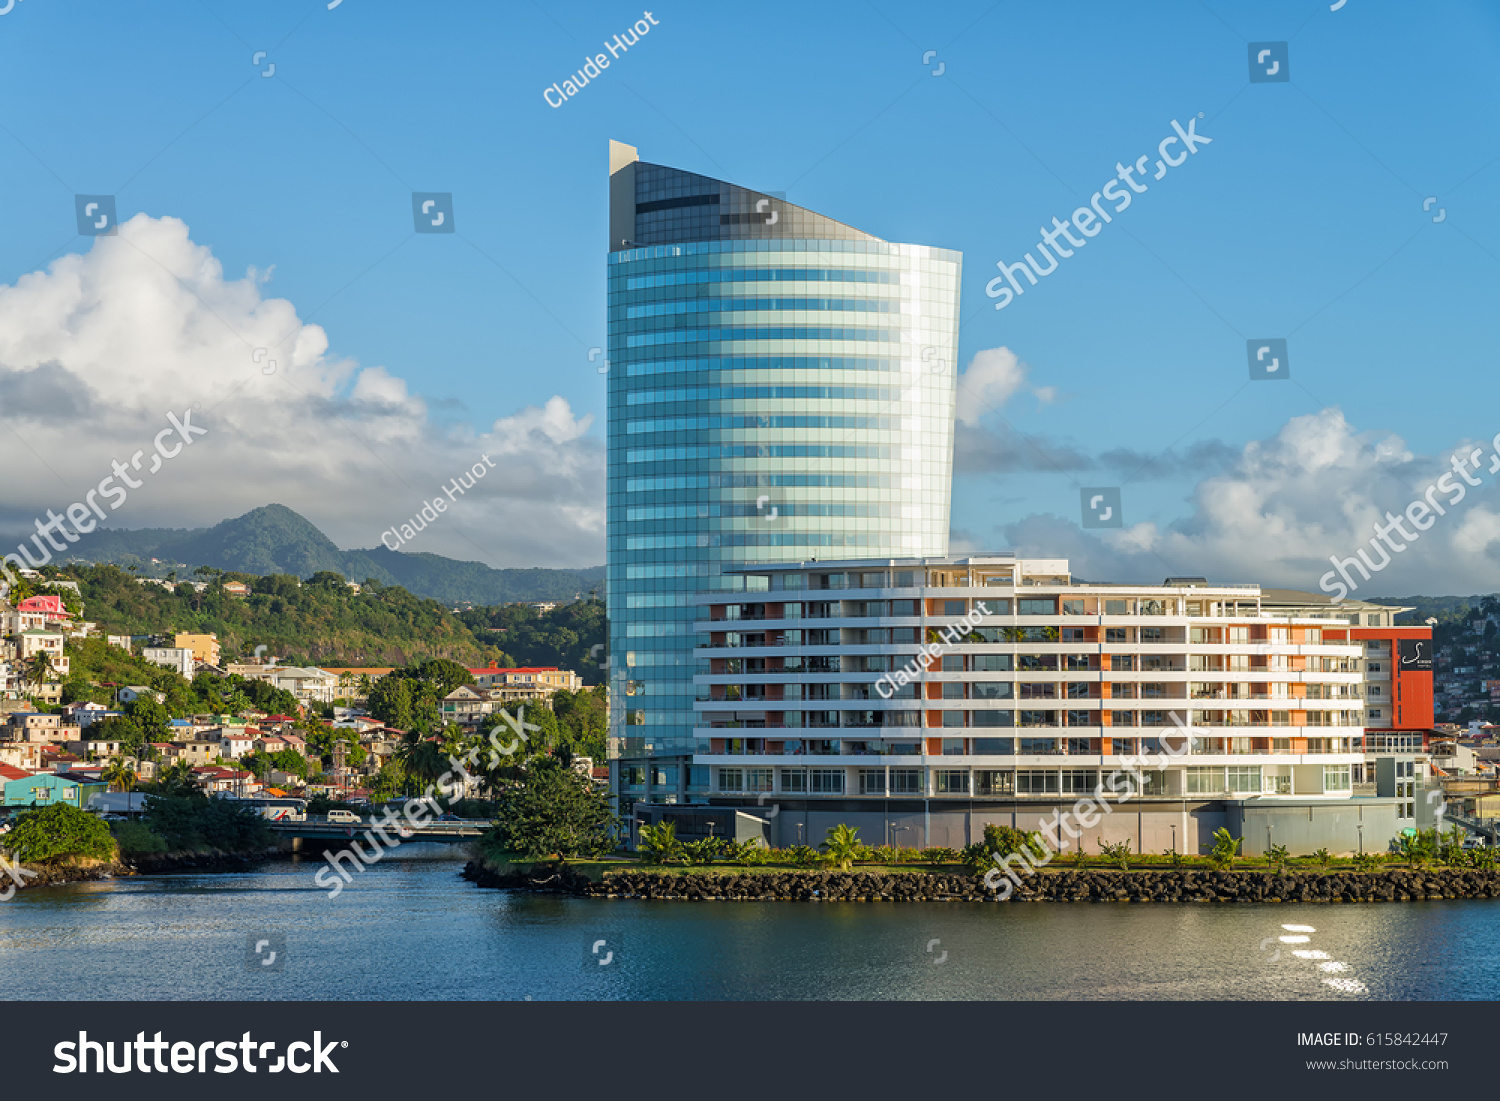 FORT-DE-FRANCE, MARTINIQUE - JANUARY 24, 2017: Business Center Pointe Simon which includes the Lumina Tower, a 21-story office building, a 40-unit condominium building and the 7-story Simon Hotel.